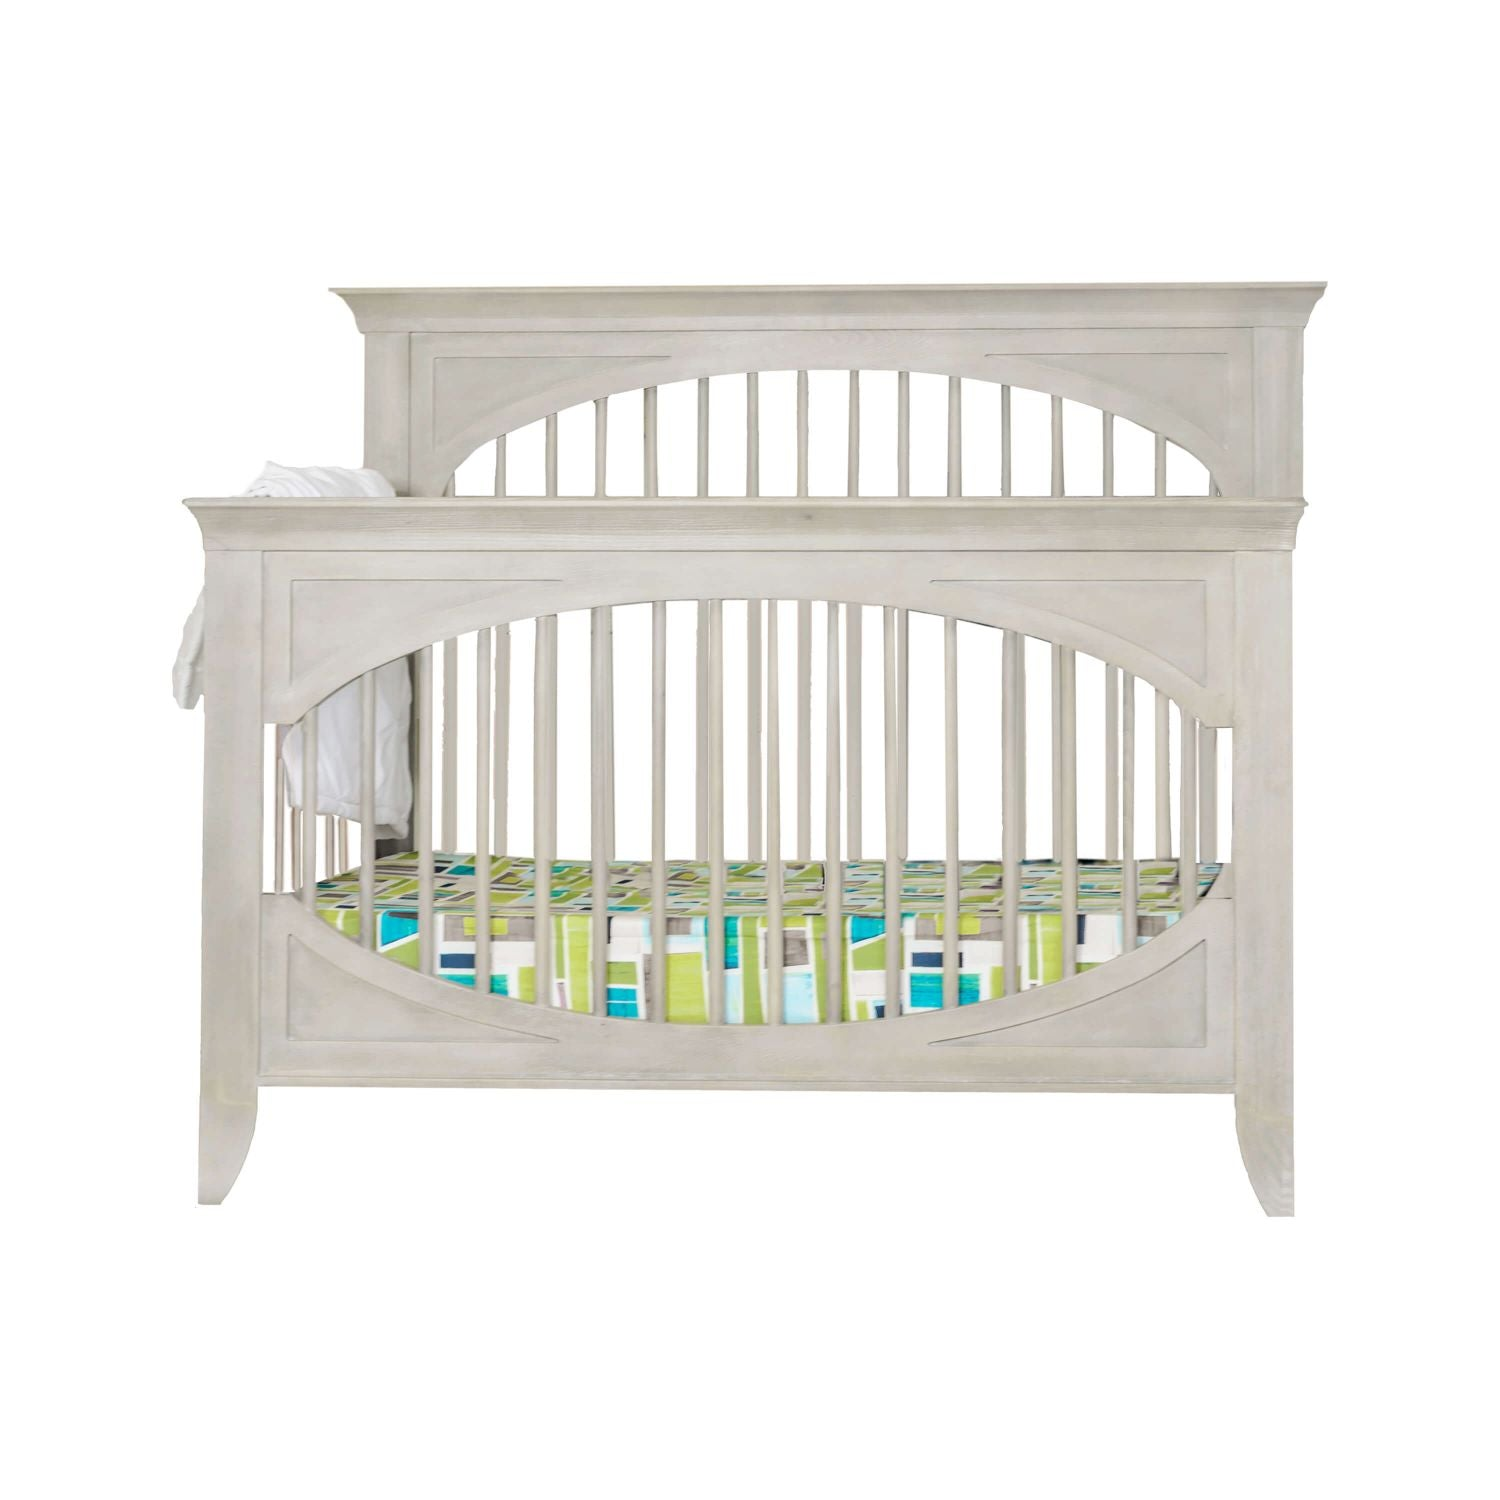 Cameo Oval 4-in-1 Convertible Crib